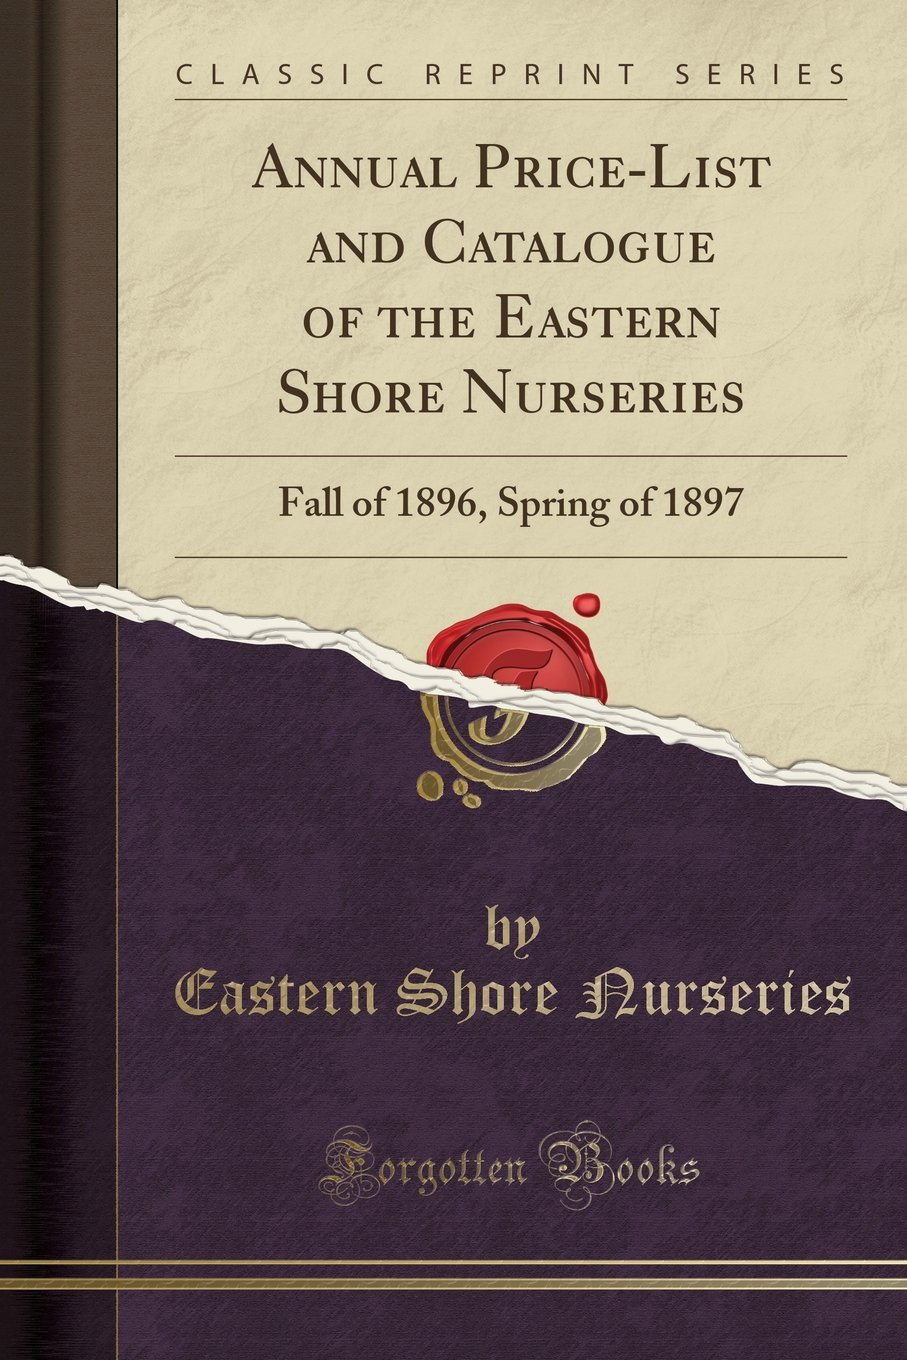 Download Annual Price-List and Catalogue of the Eastern Shore Nurseries: Fall of 1896, Spring of 1897 (Classic Reprint) ebook